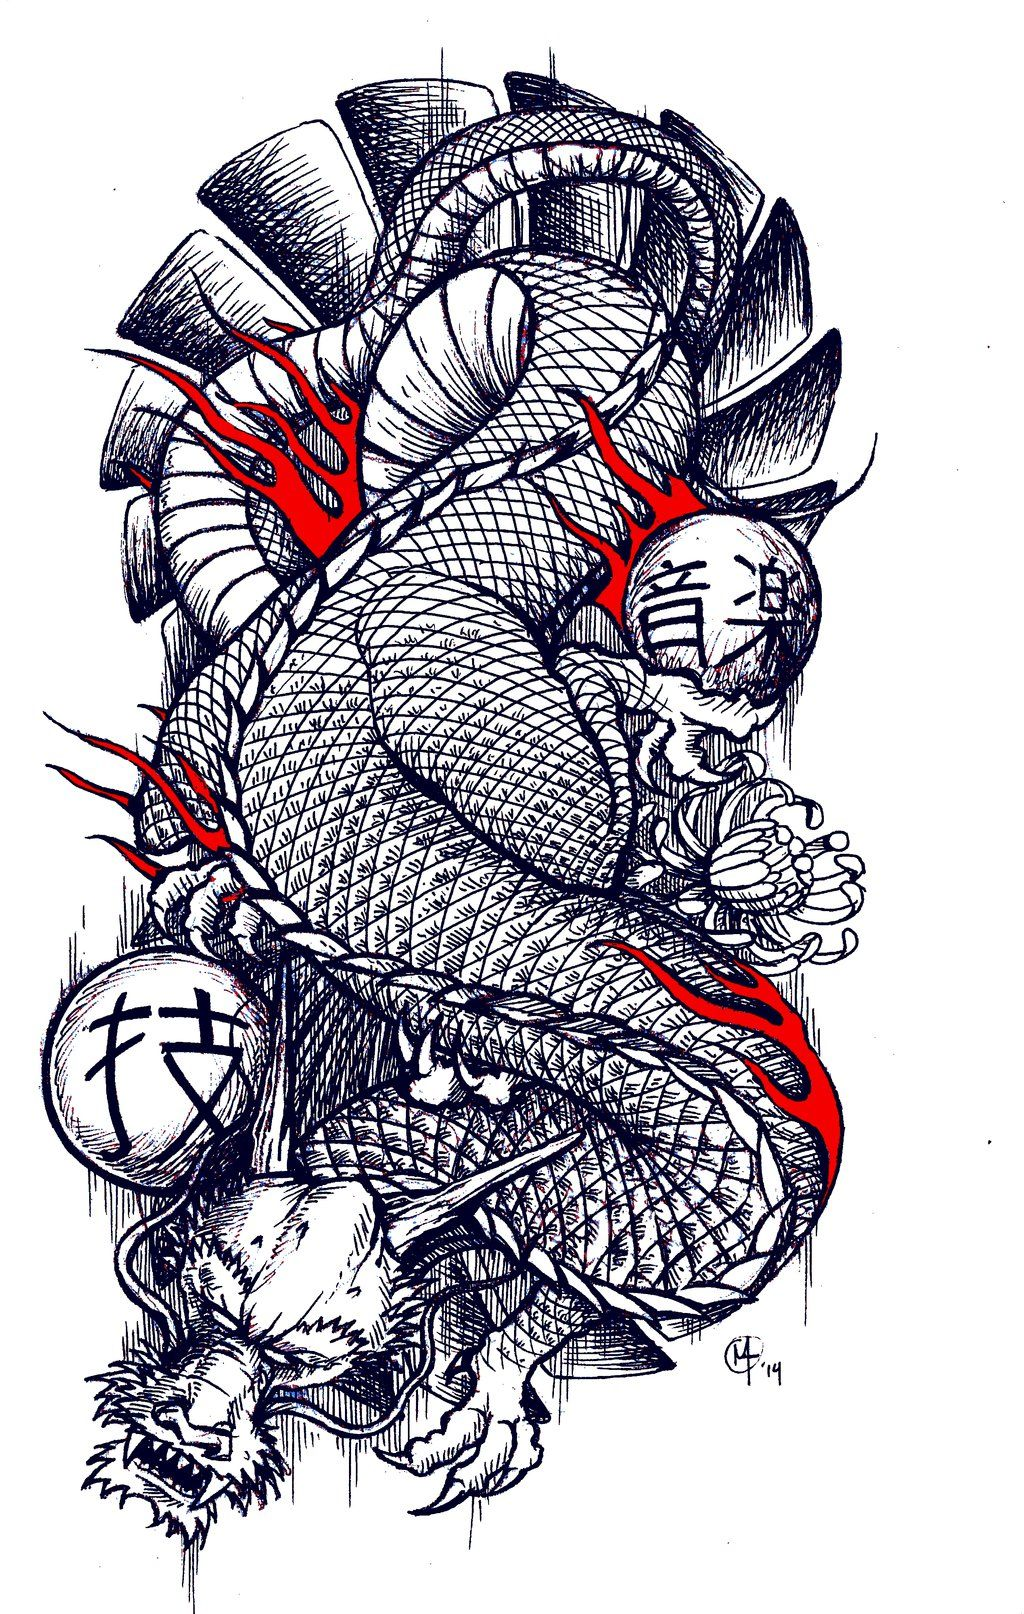 Traditional Japanese Dragon Tattoo Design Japanese Dragon Tattoos Japanese Dragon Tattoo Dragon Tattoo Designs